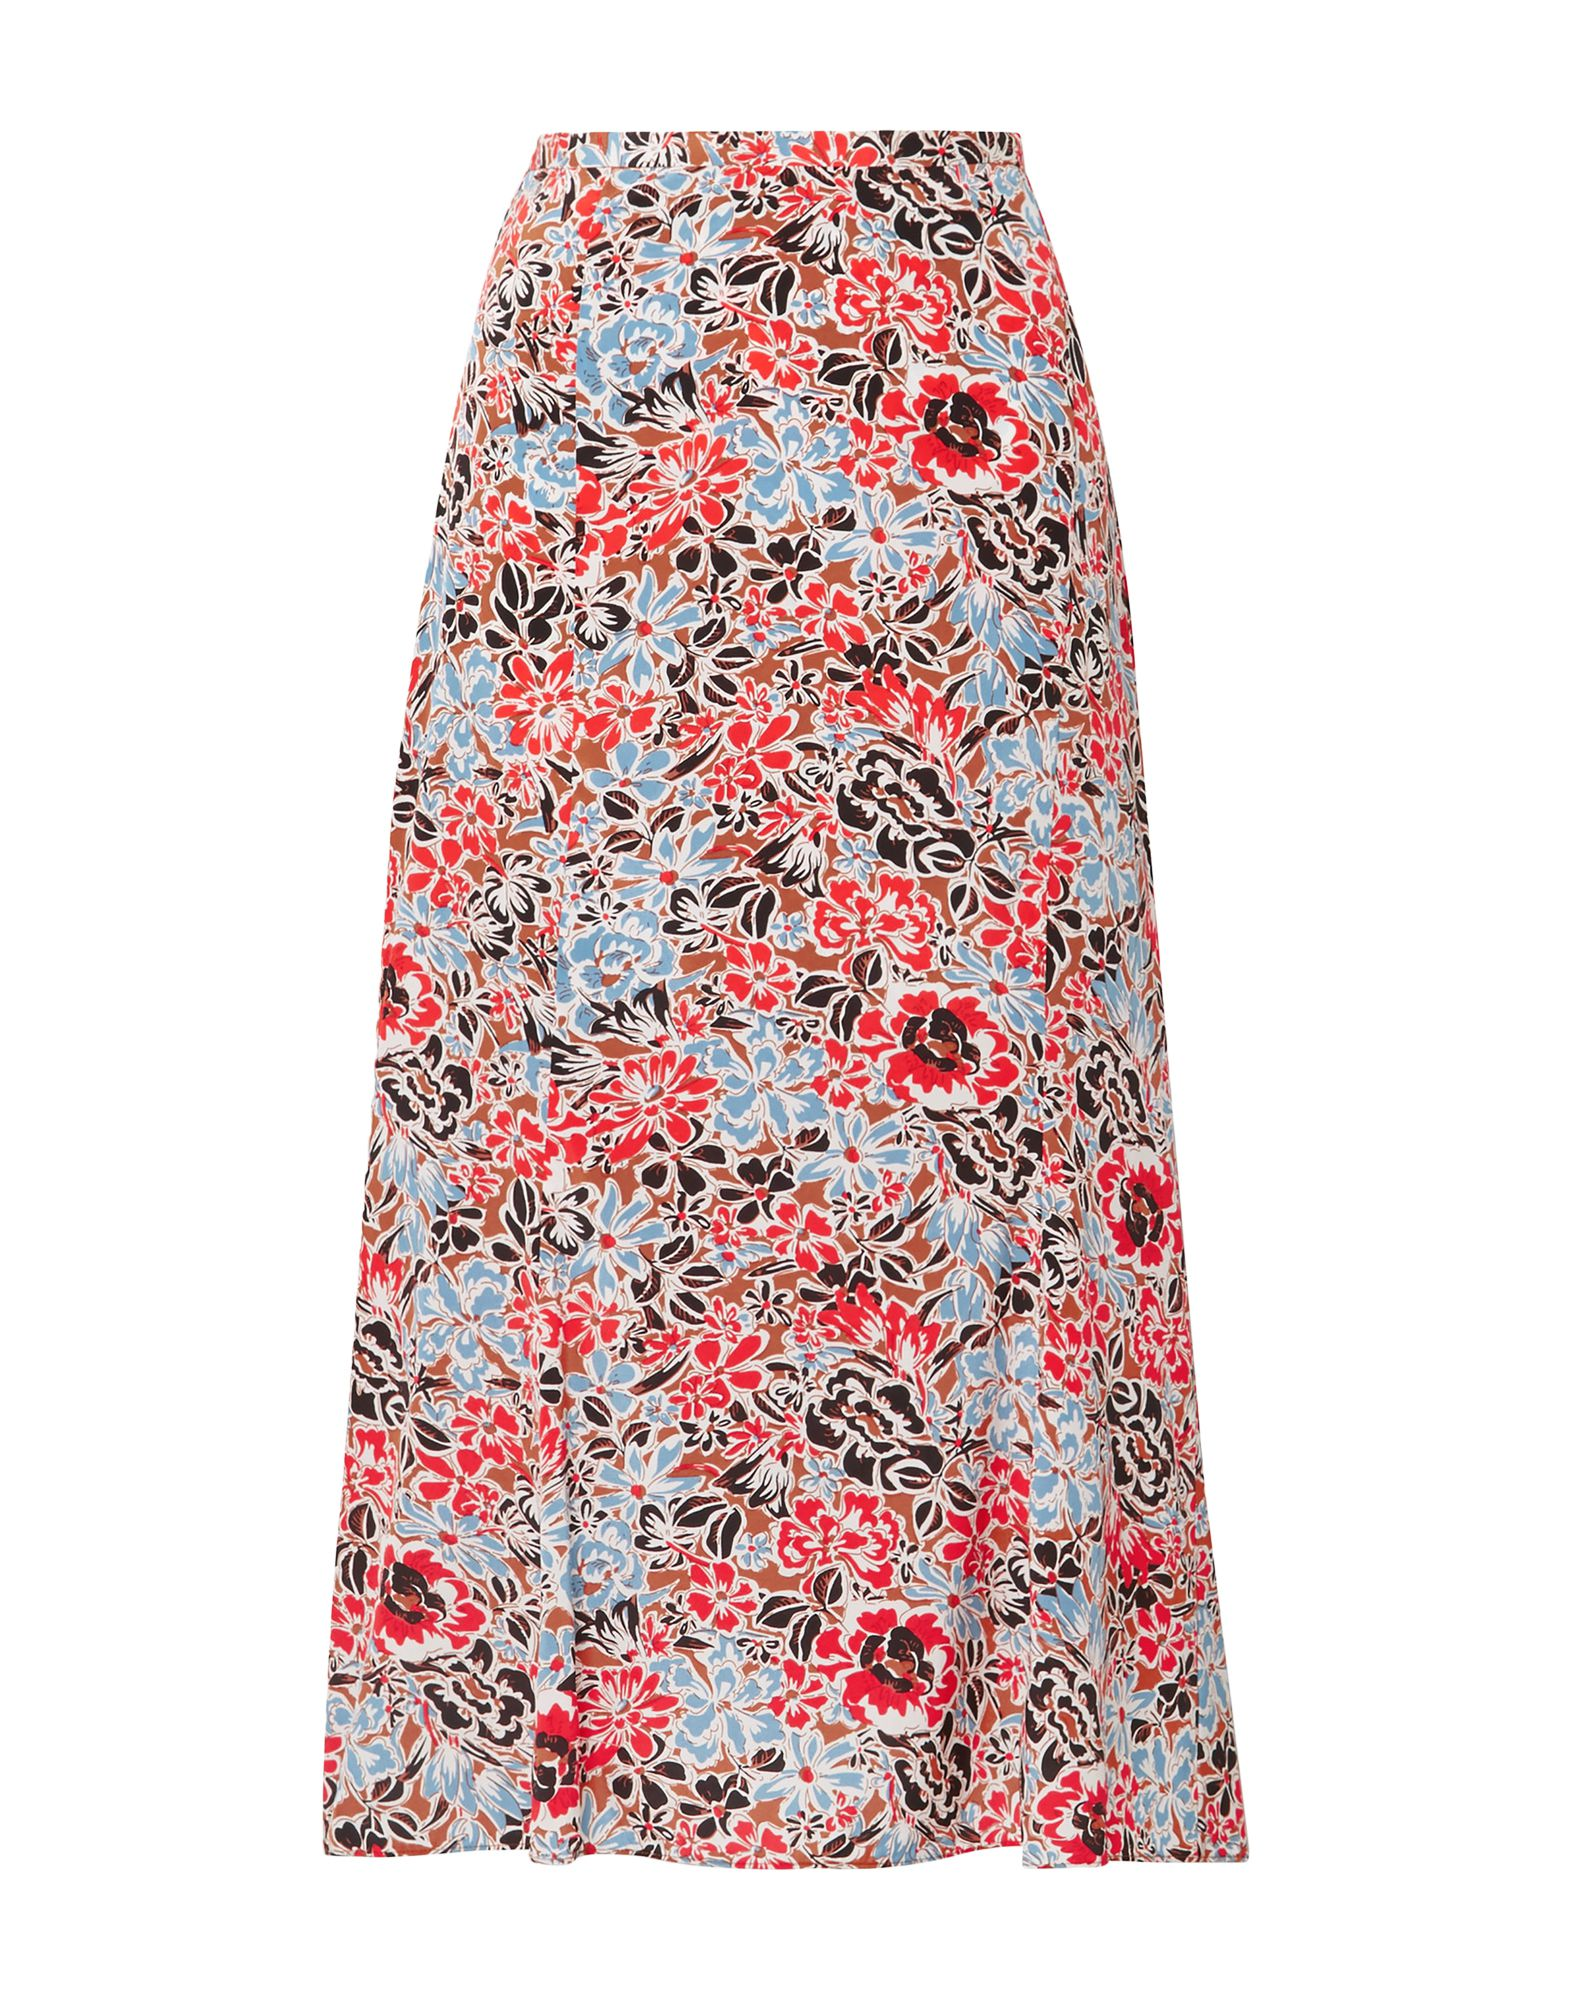 VERONICA BEARD 3/4 length skirts. crepe, no appliqués, floral design, no pockets, side closure, zipper closure, fully lined, stretch. 91% Silk, 9% Elastane